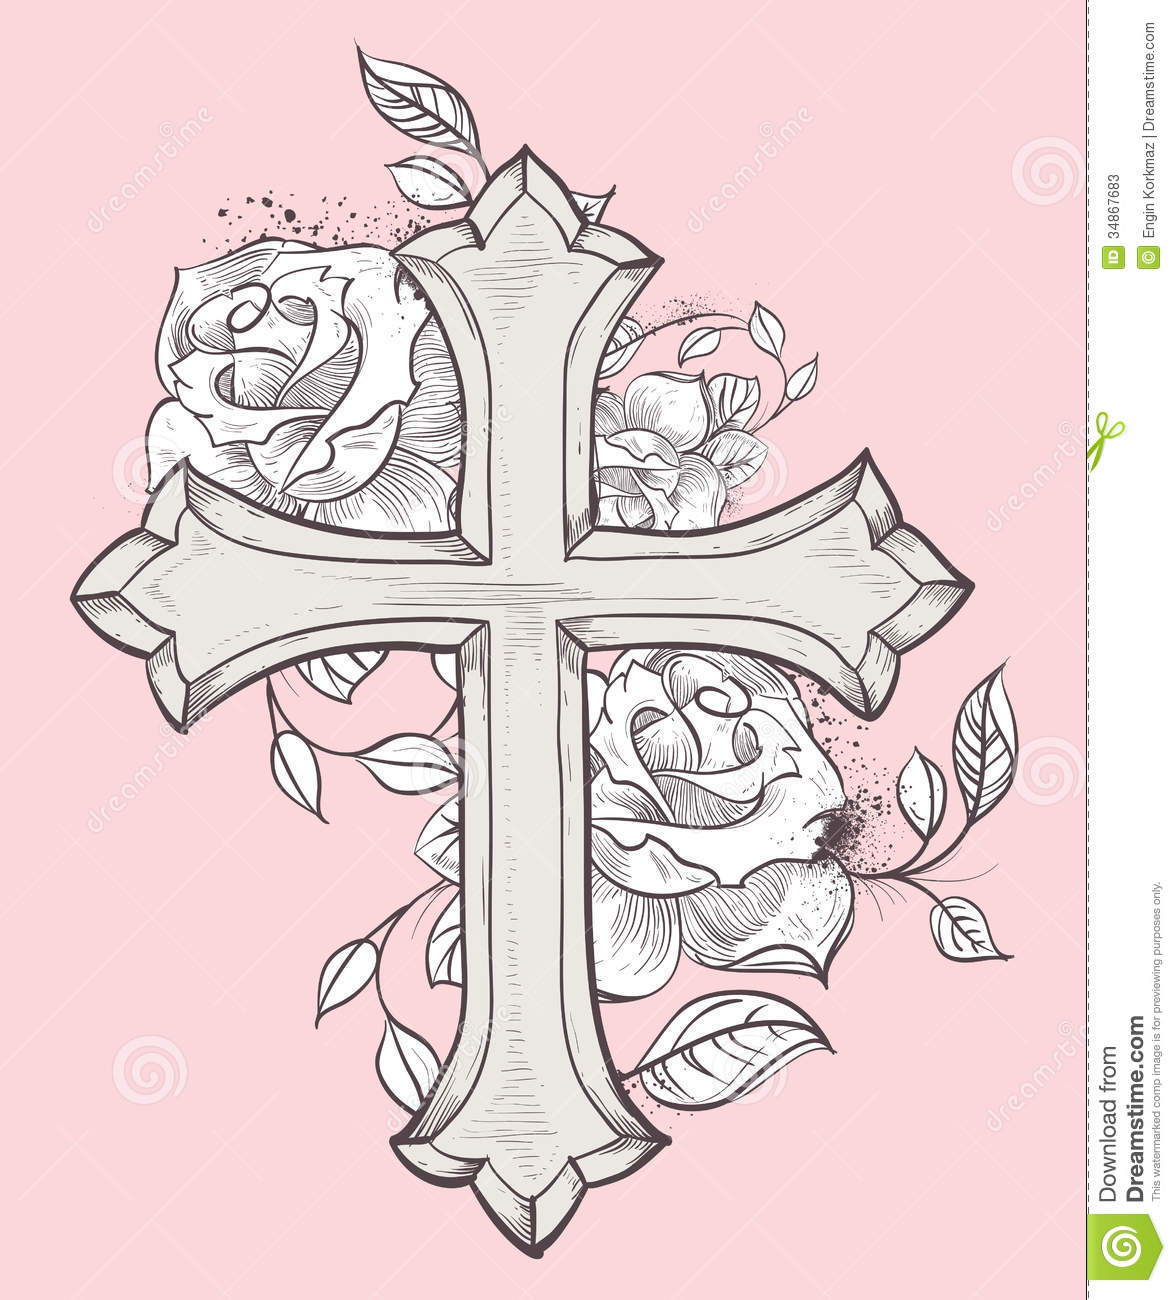 1176x1300 Pix For Gt Cross With Roses And Banner Tattos I Lt3